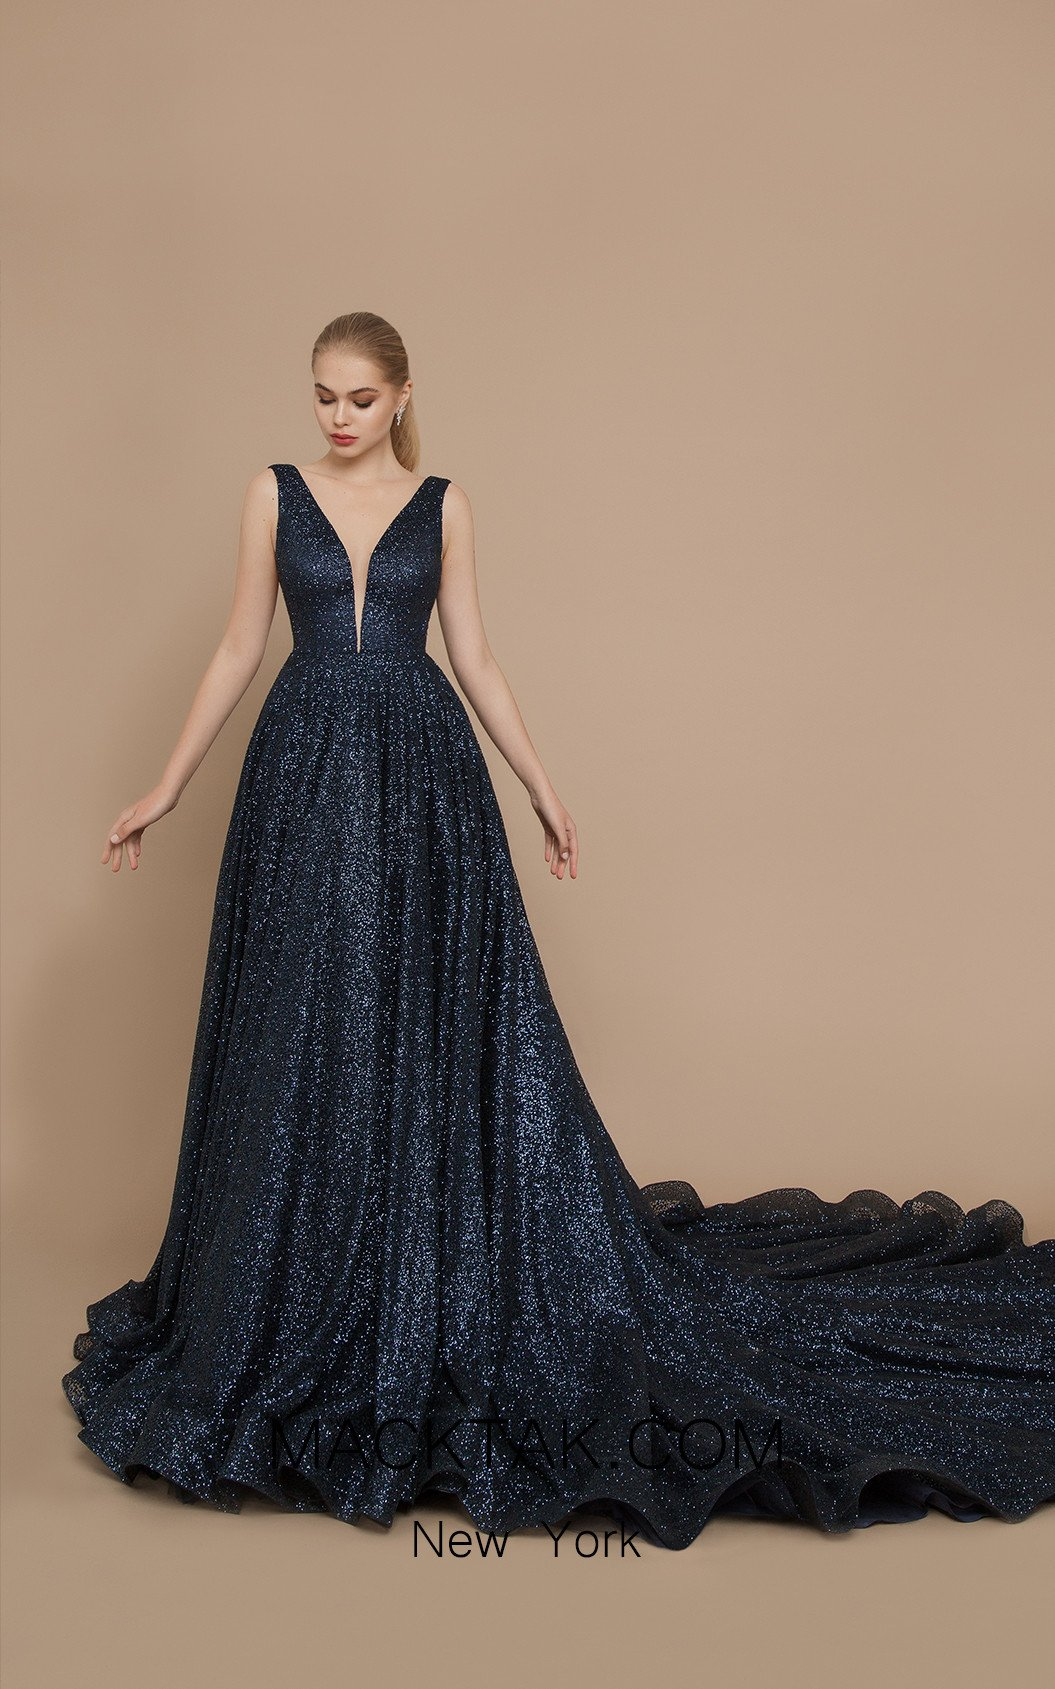 Ricca Sposa Moon Dark Blue Front Dress